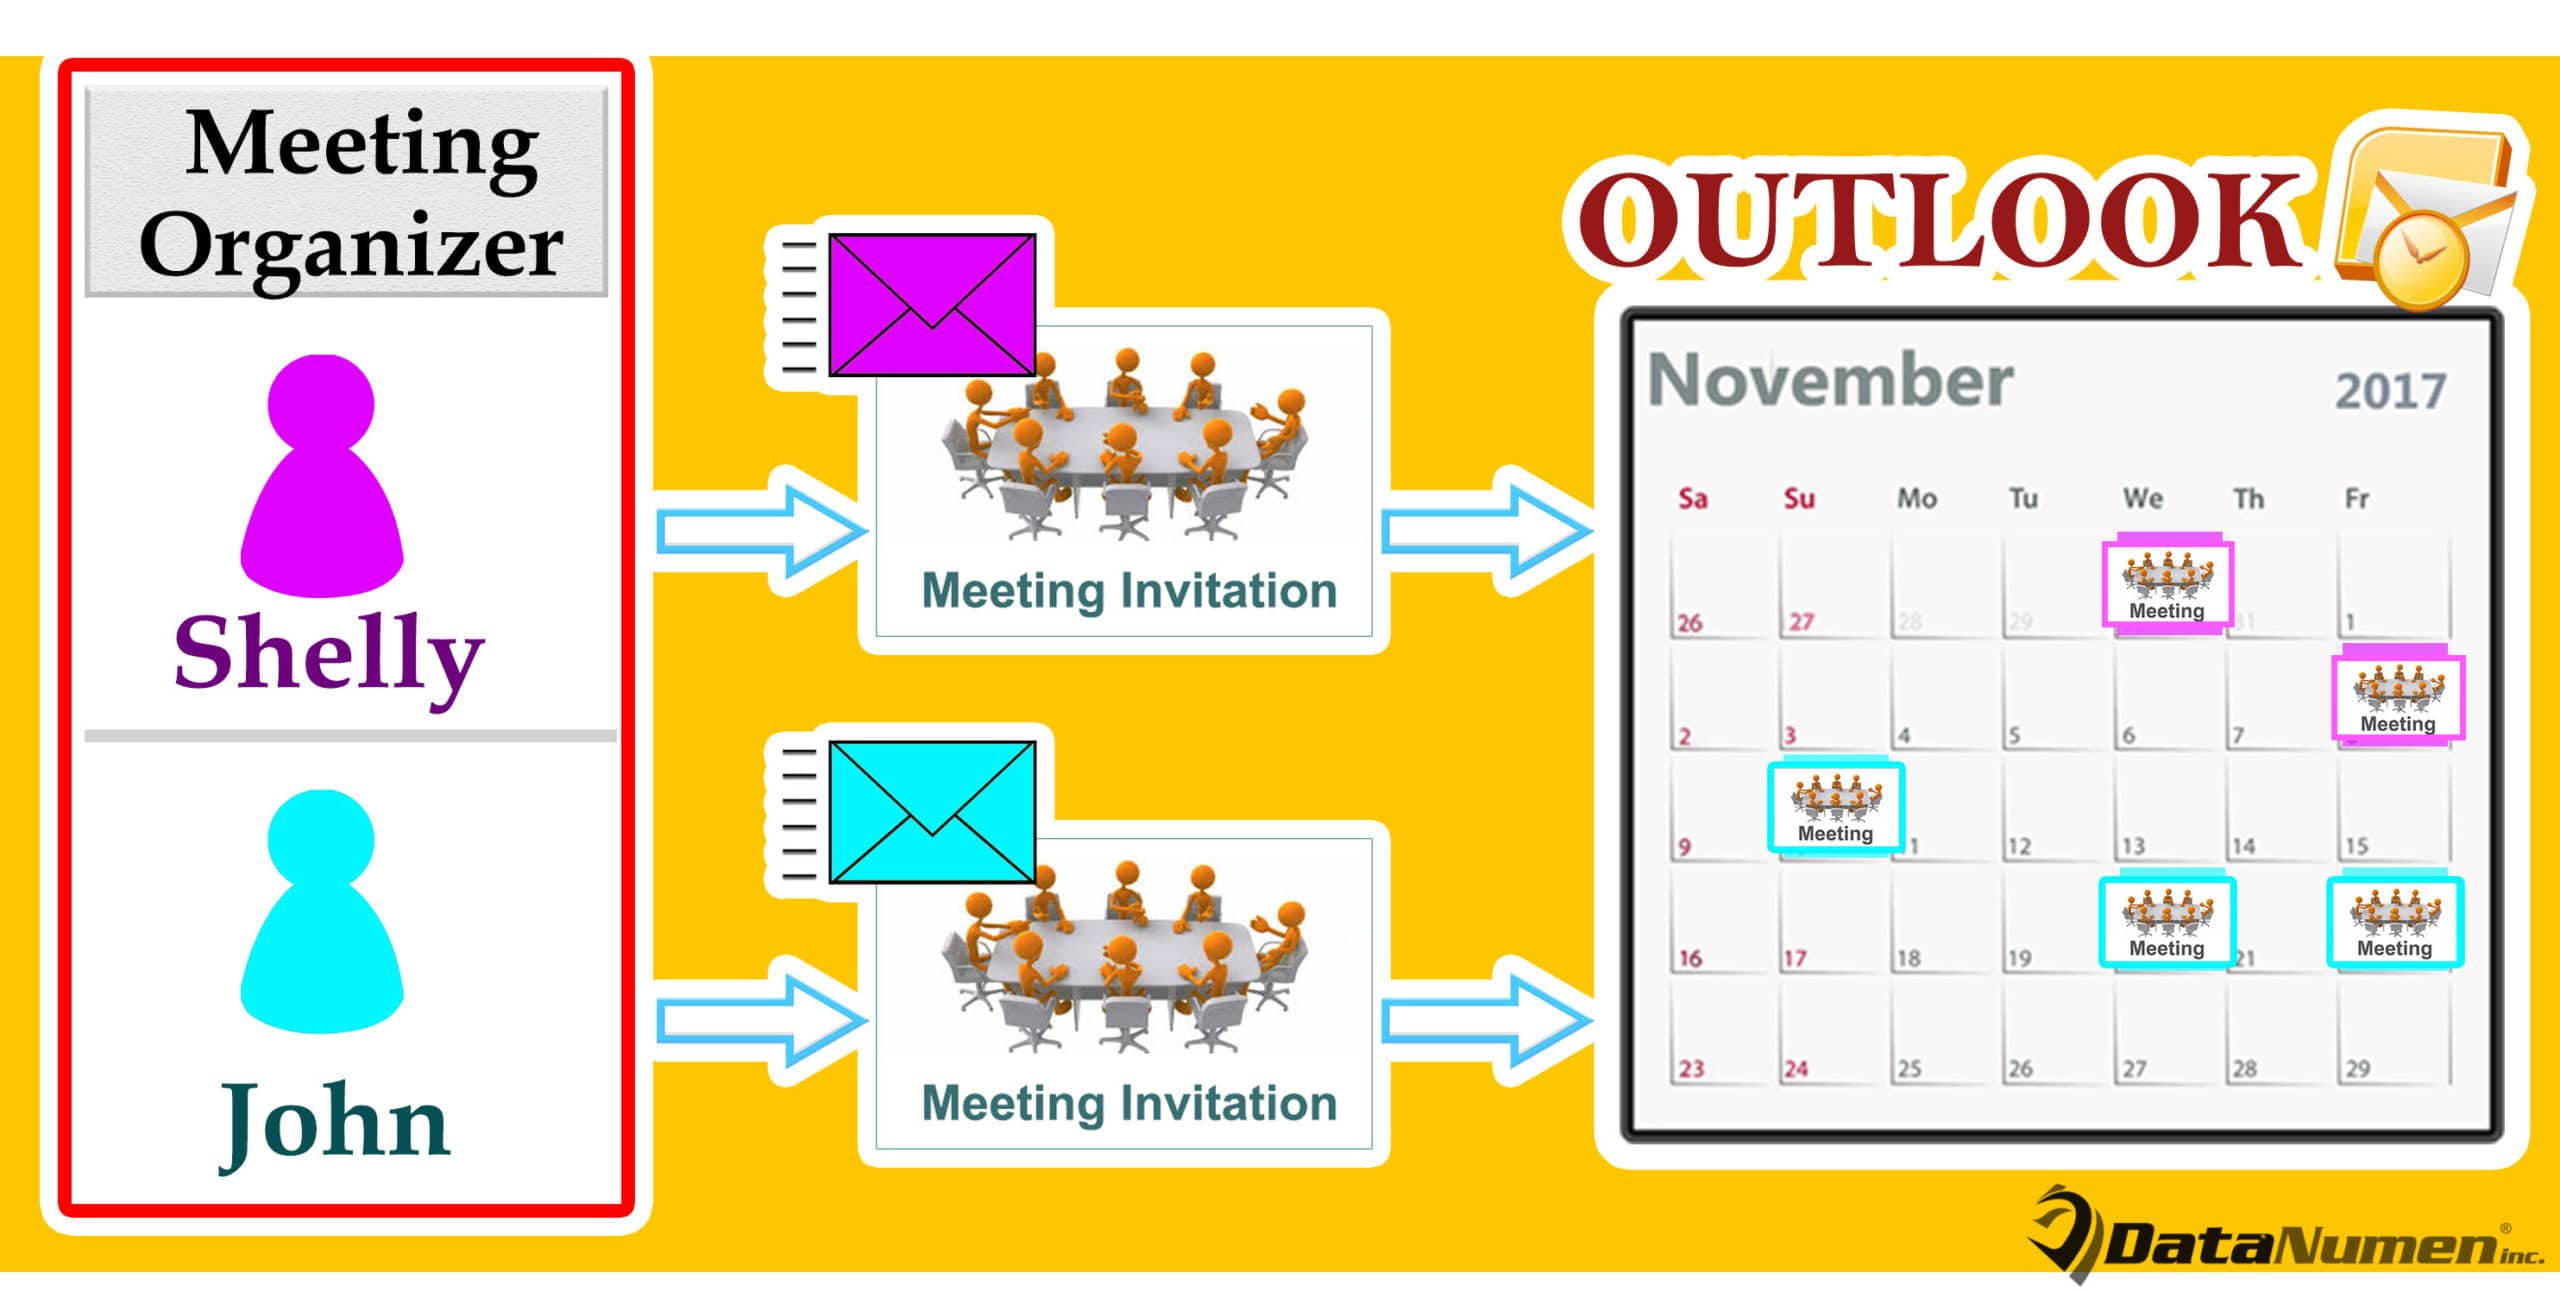 2 Ways to Auto Change the Colors of Incoming Meetings Based